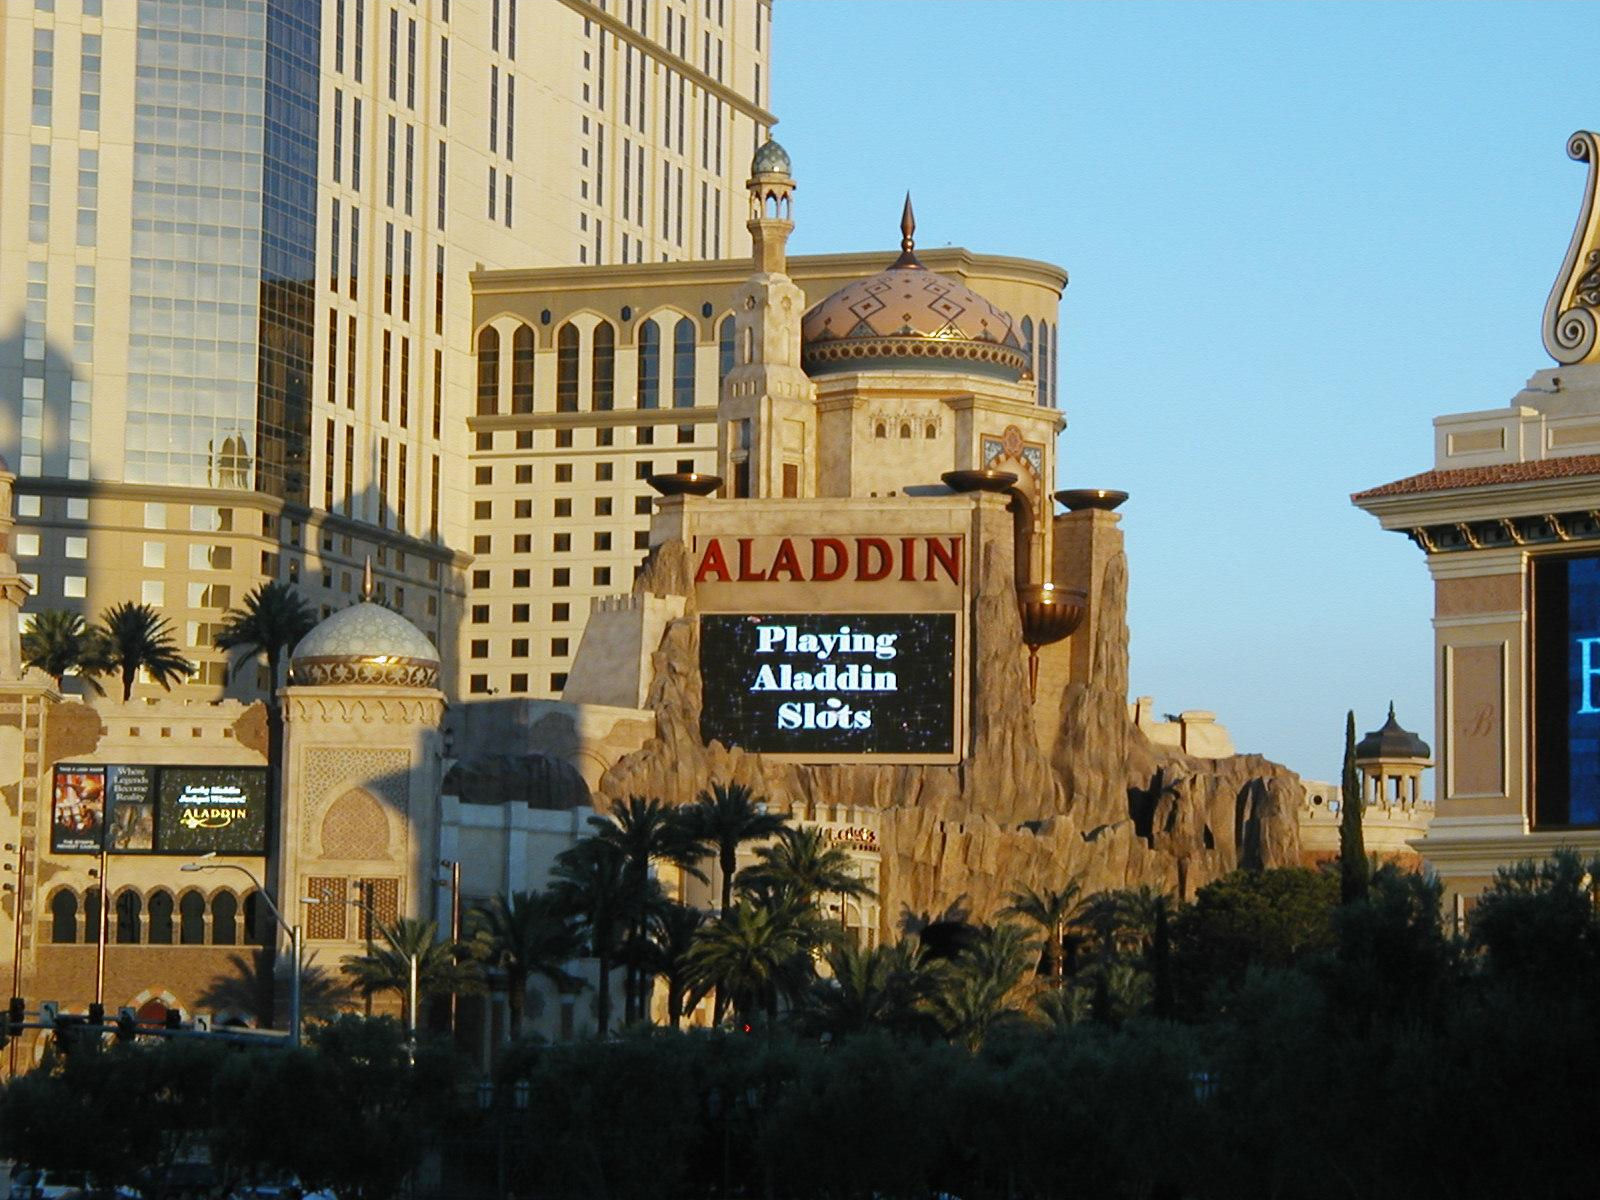 Eliminating the Aladdin identity and adding a new one. How do you economically deal with so much demolition?